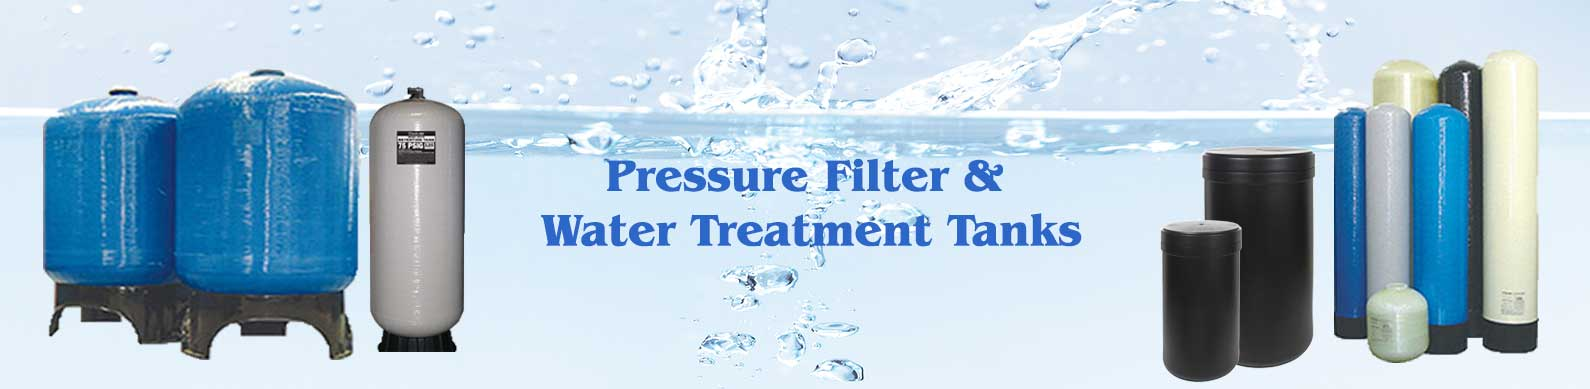 clack-pressure-filter-and-water-treatment-tanks-banner.jpg